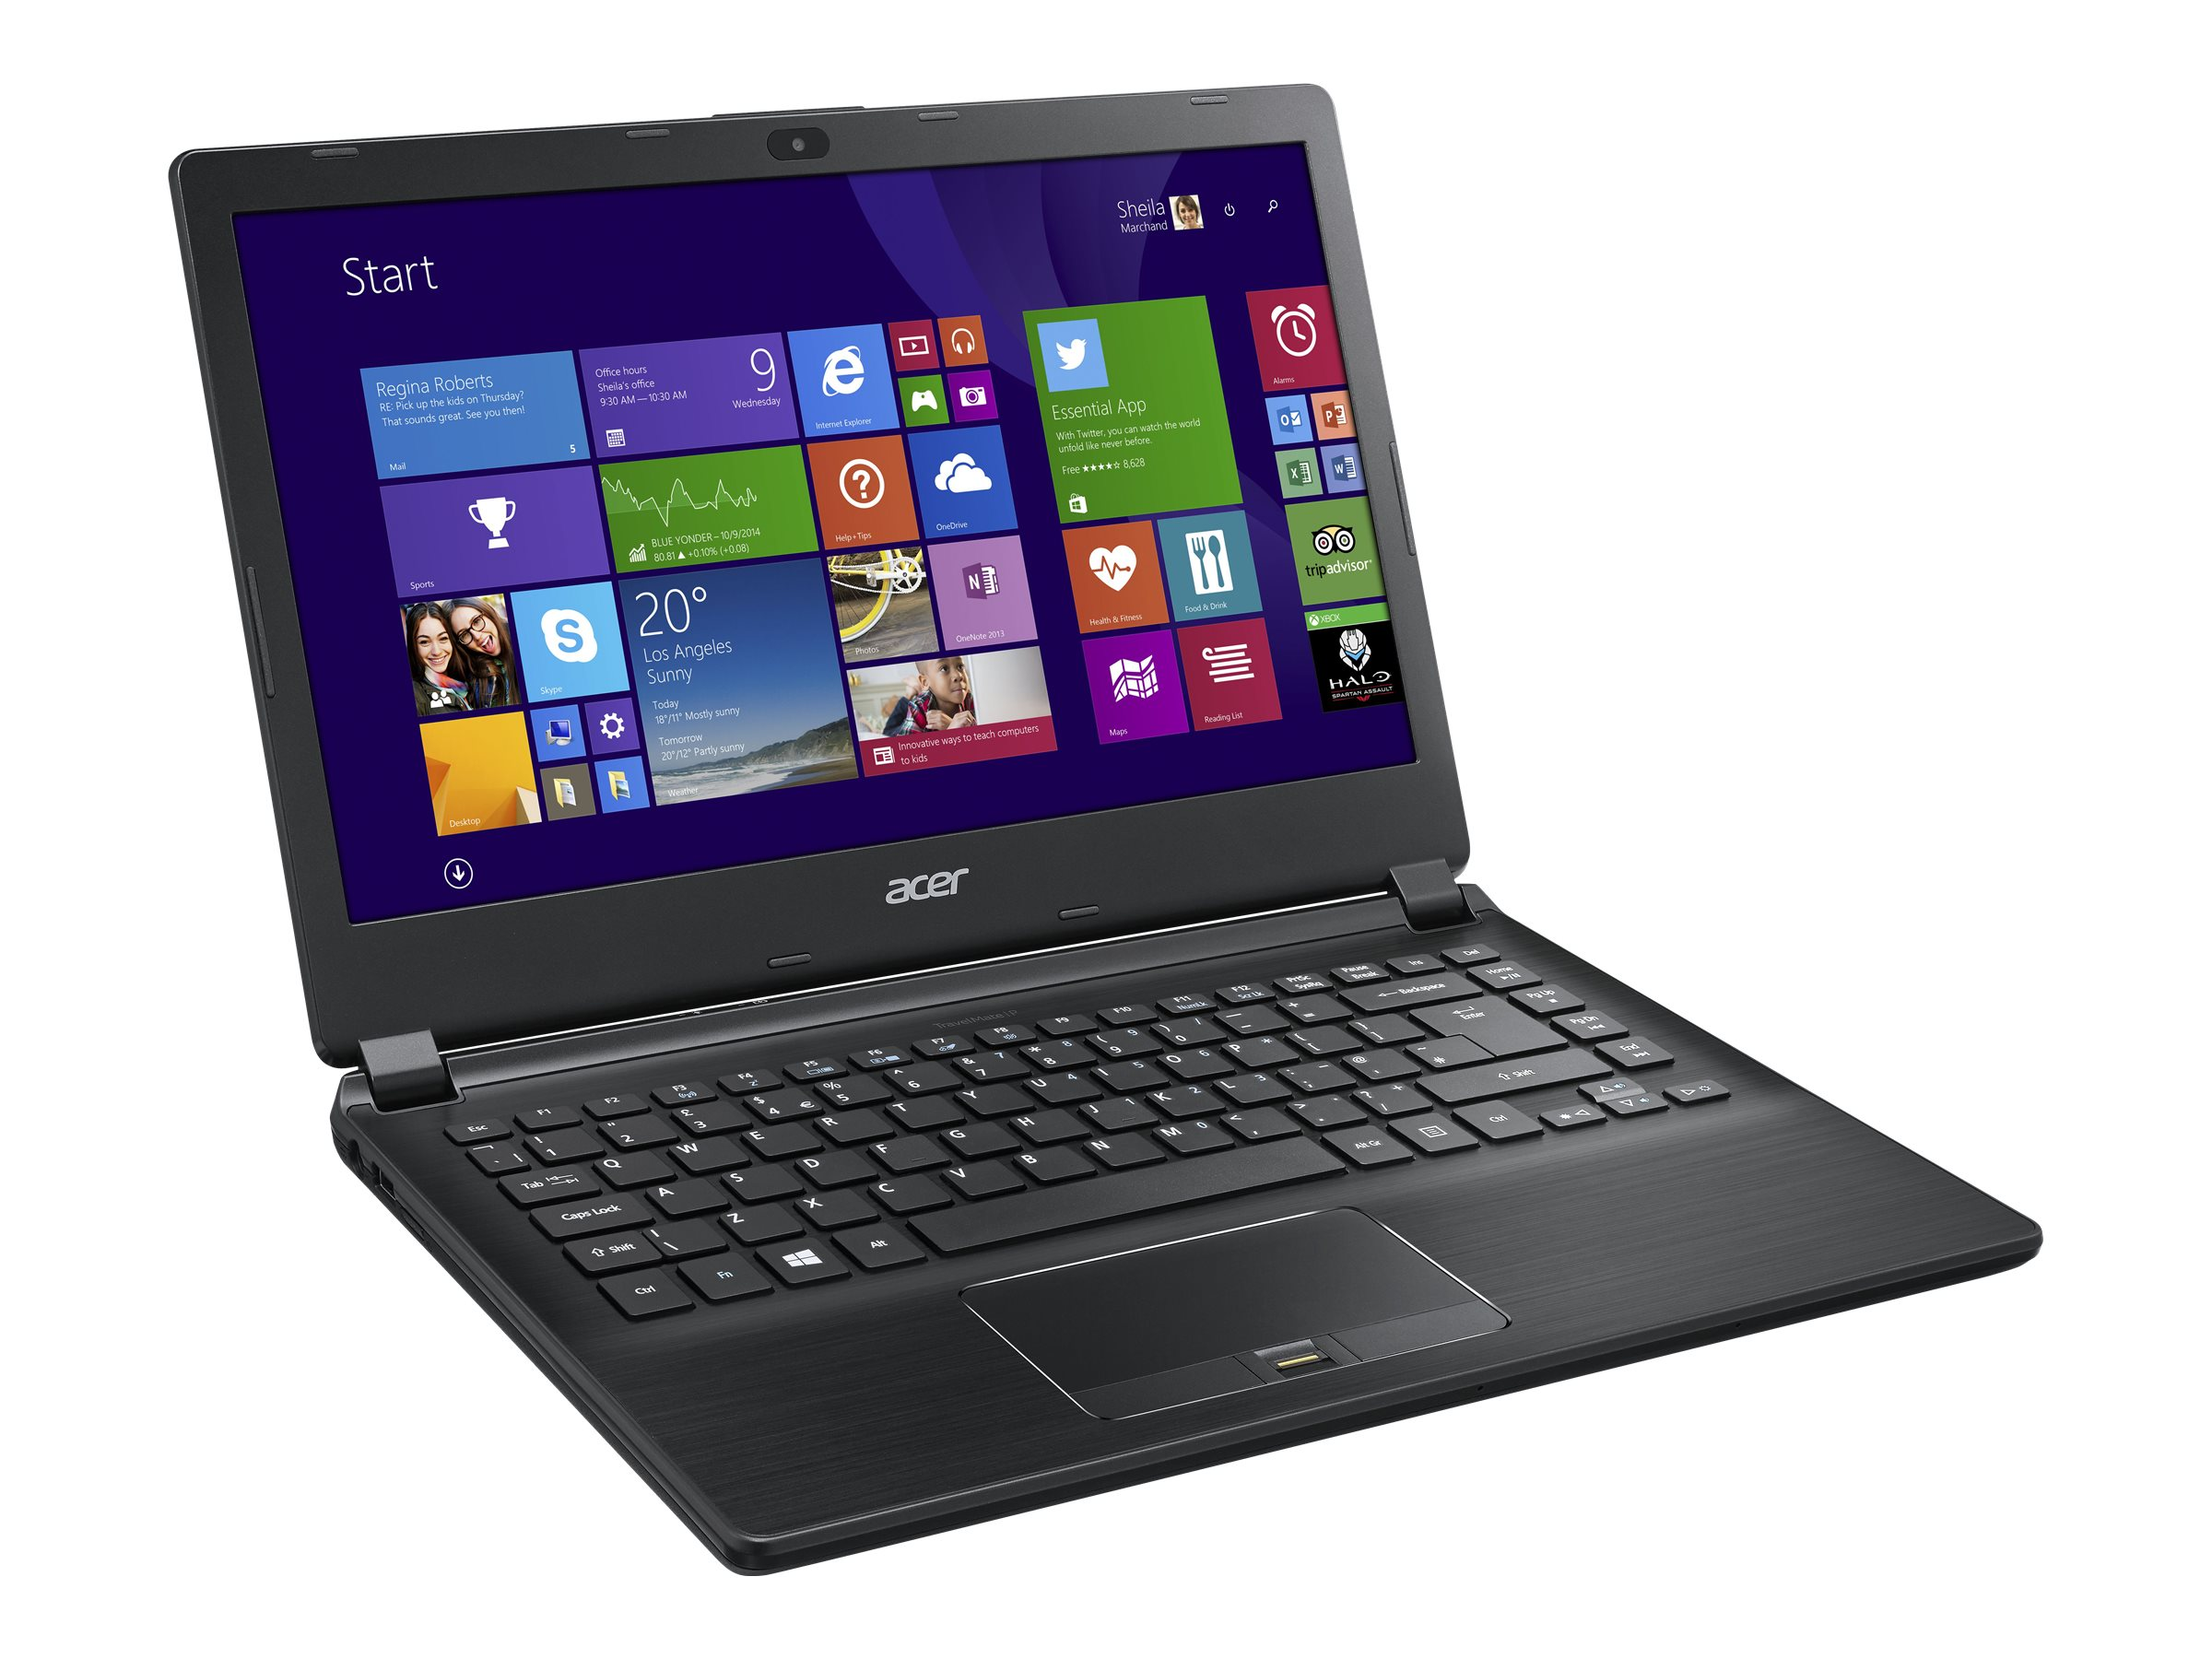 Acer NX.VCEAA.003 Image 3